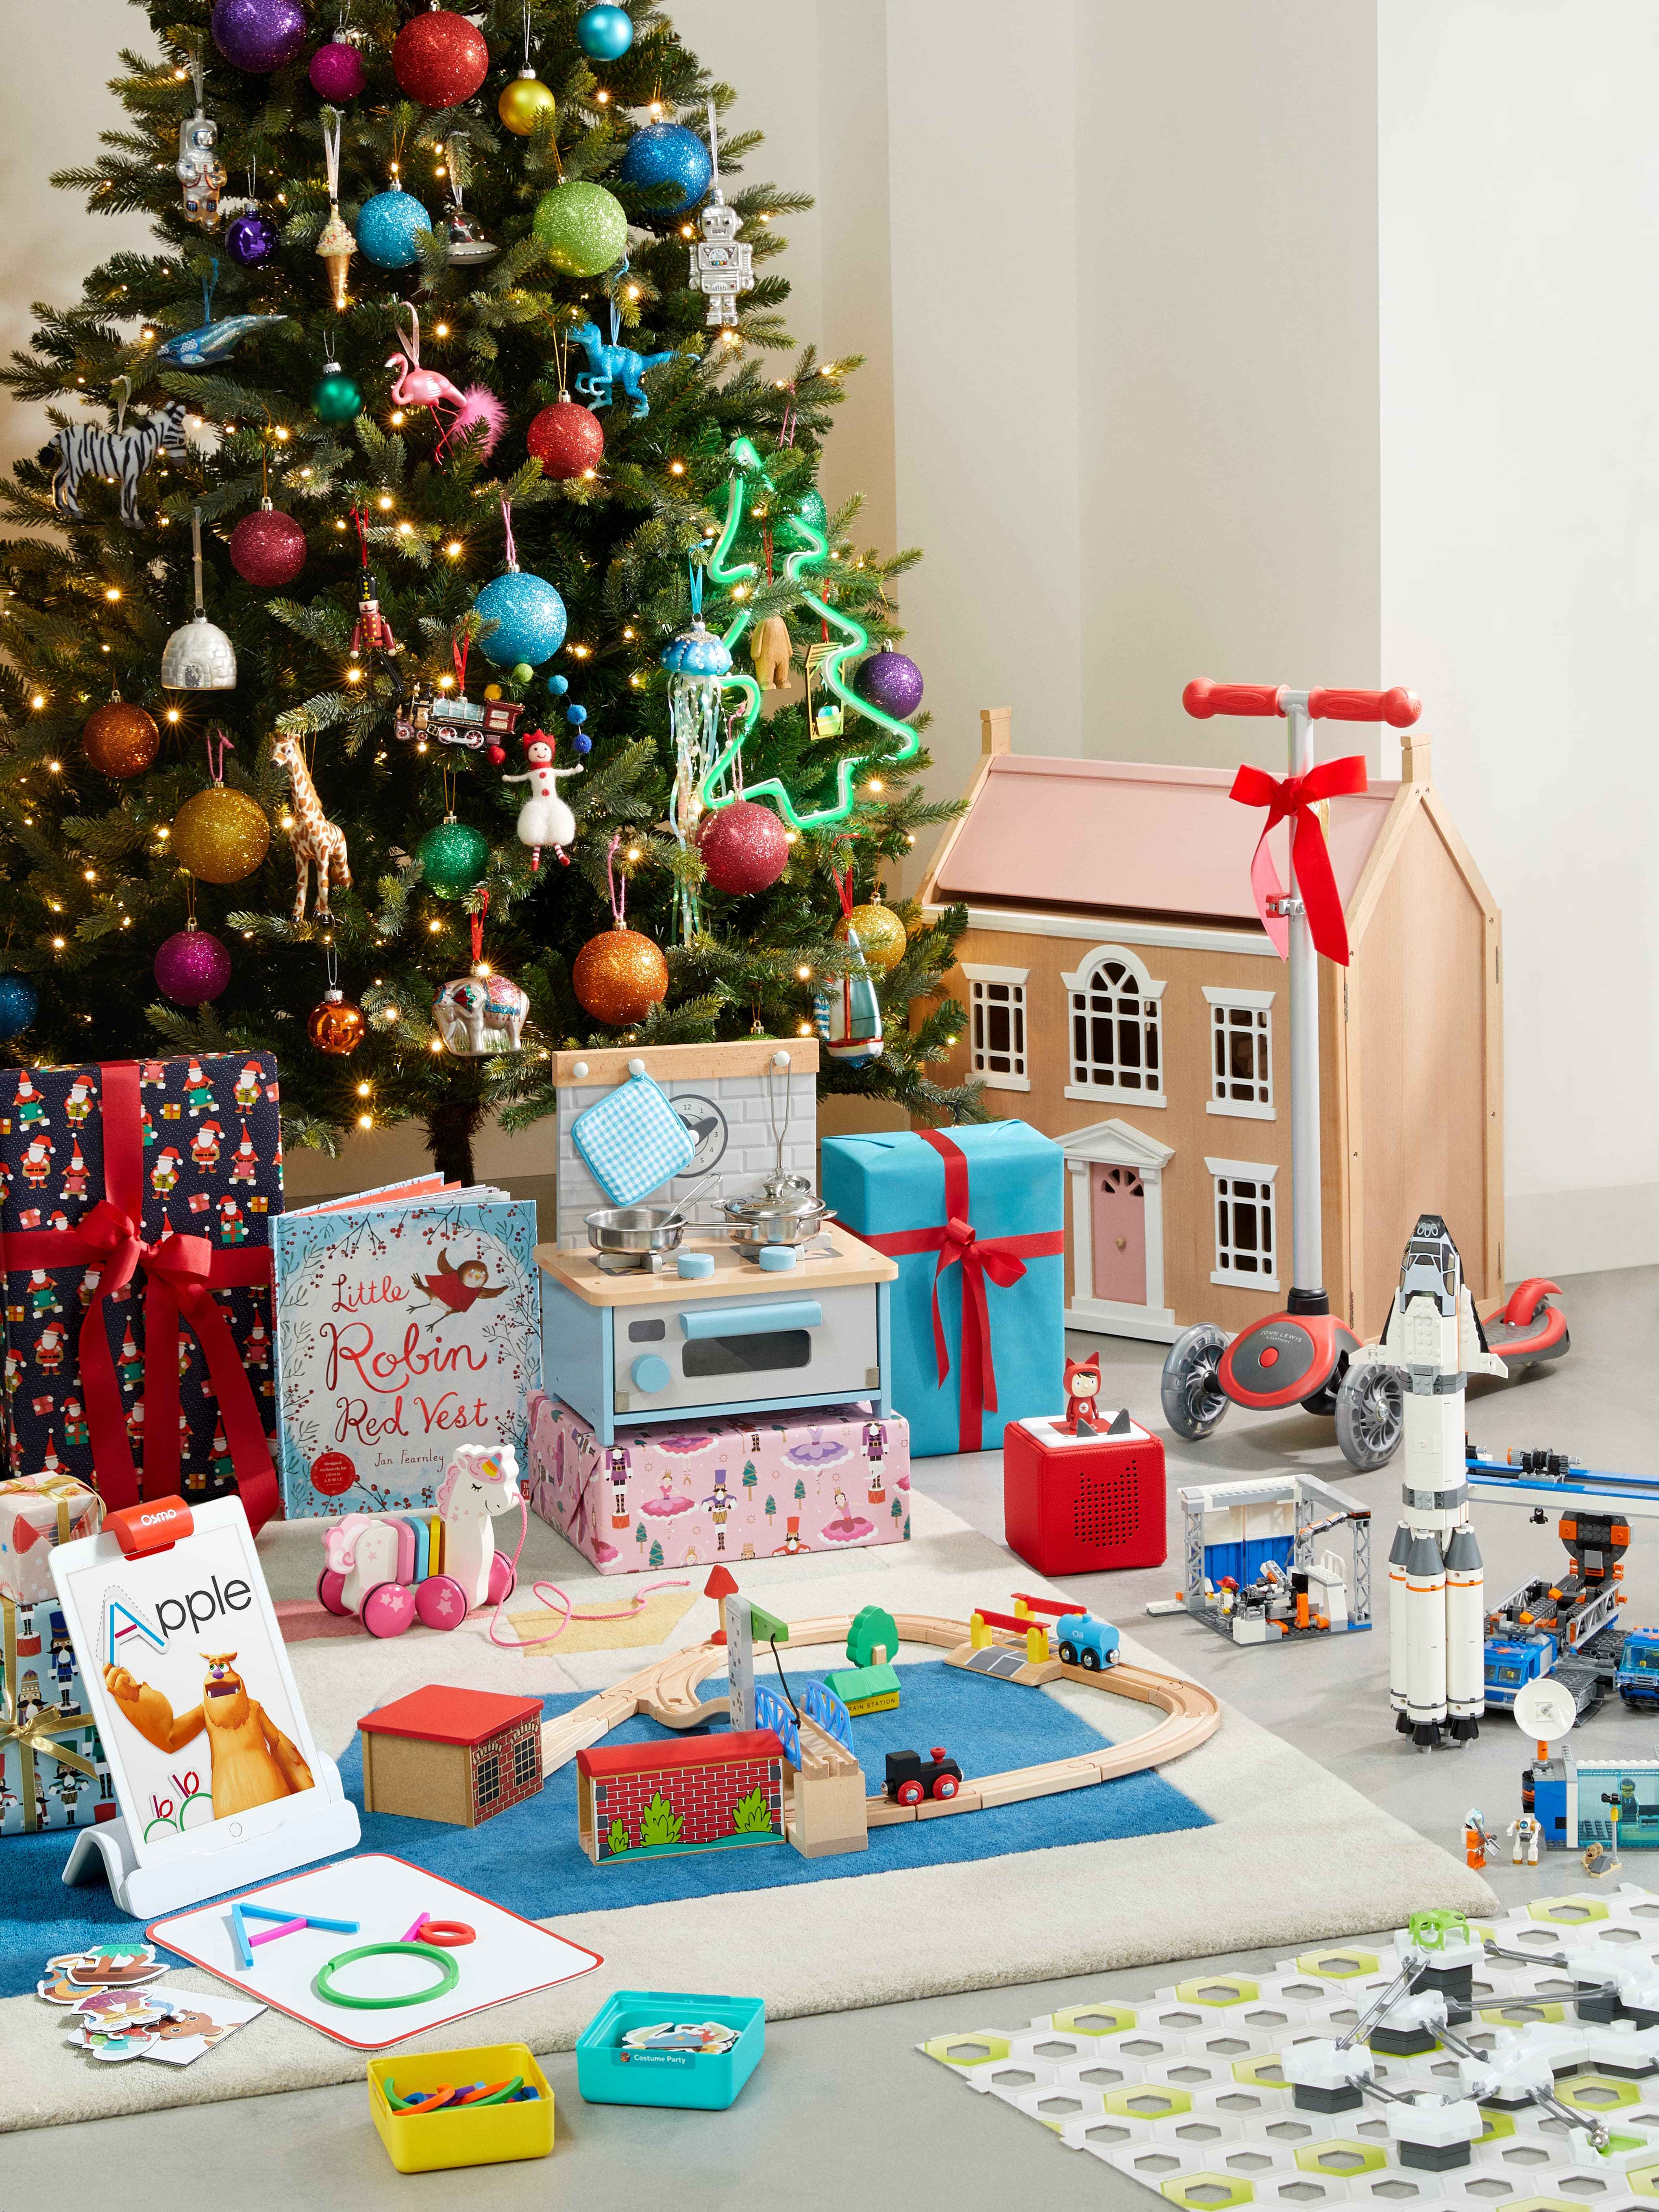 Black Friday is a good opportunity to pick up a toy bargain from John Lewis